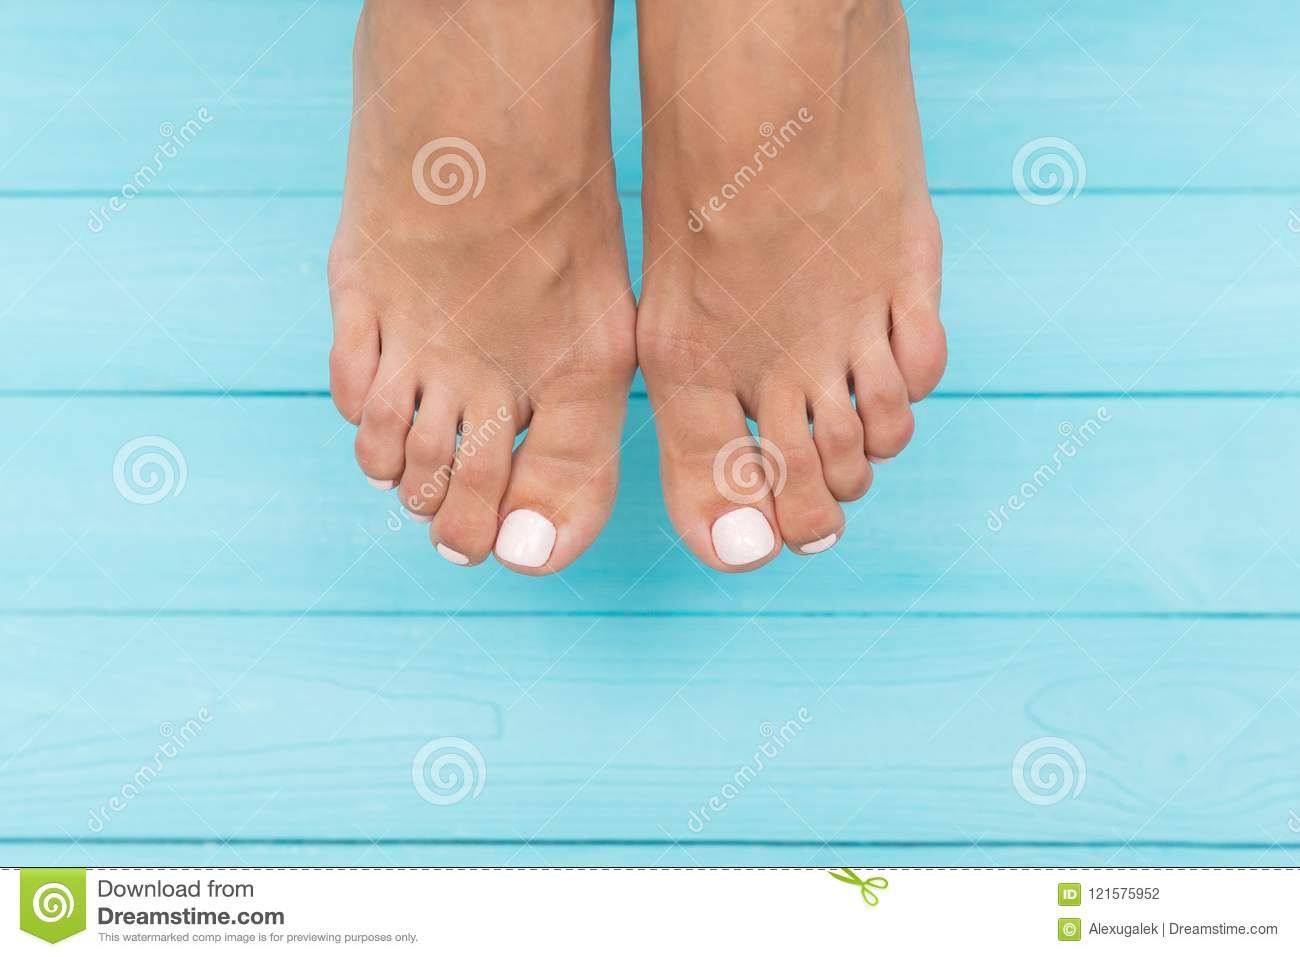 Legs With Varicose Veins Stock Photo Image Of Woman 121575952